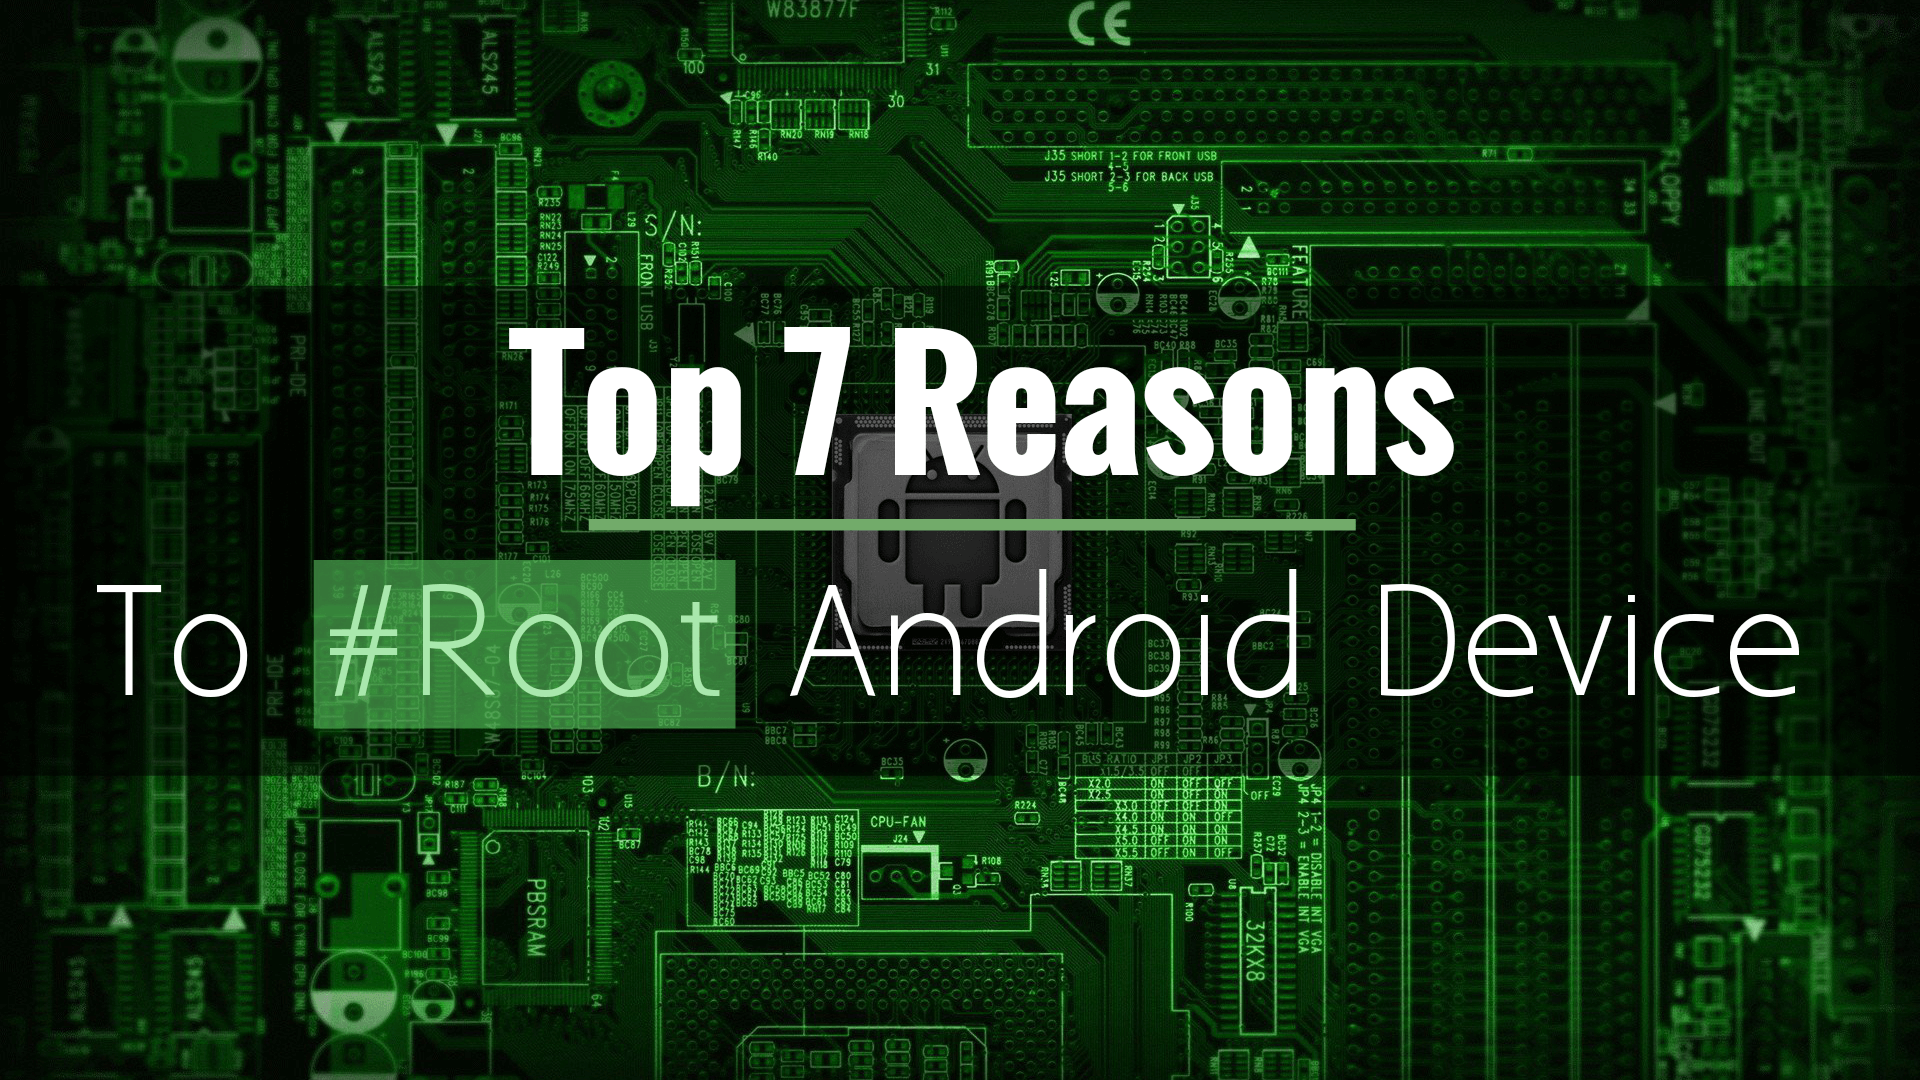 Top 7 Reasons to Root Android Device